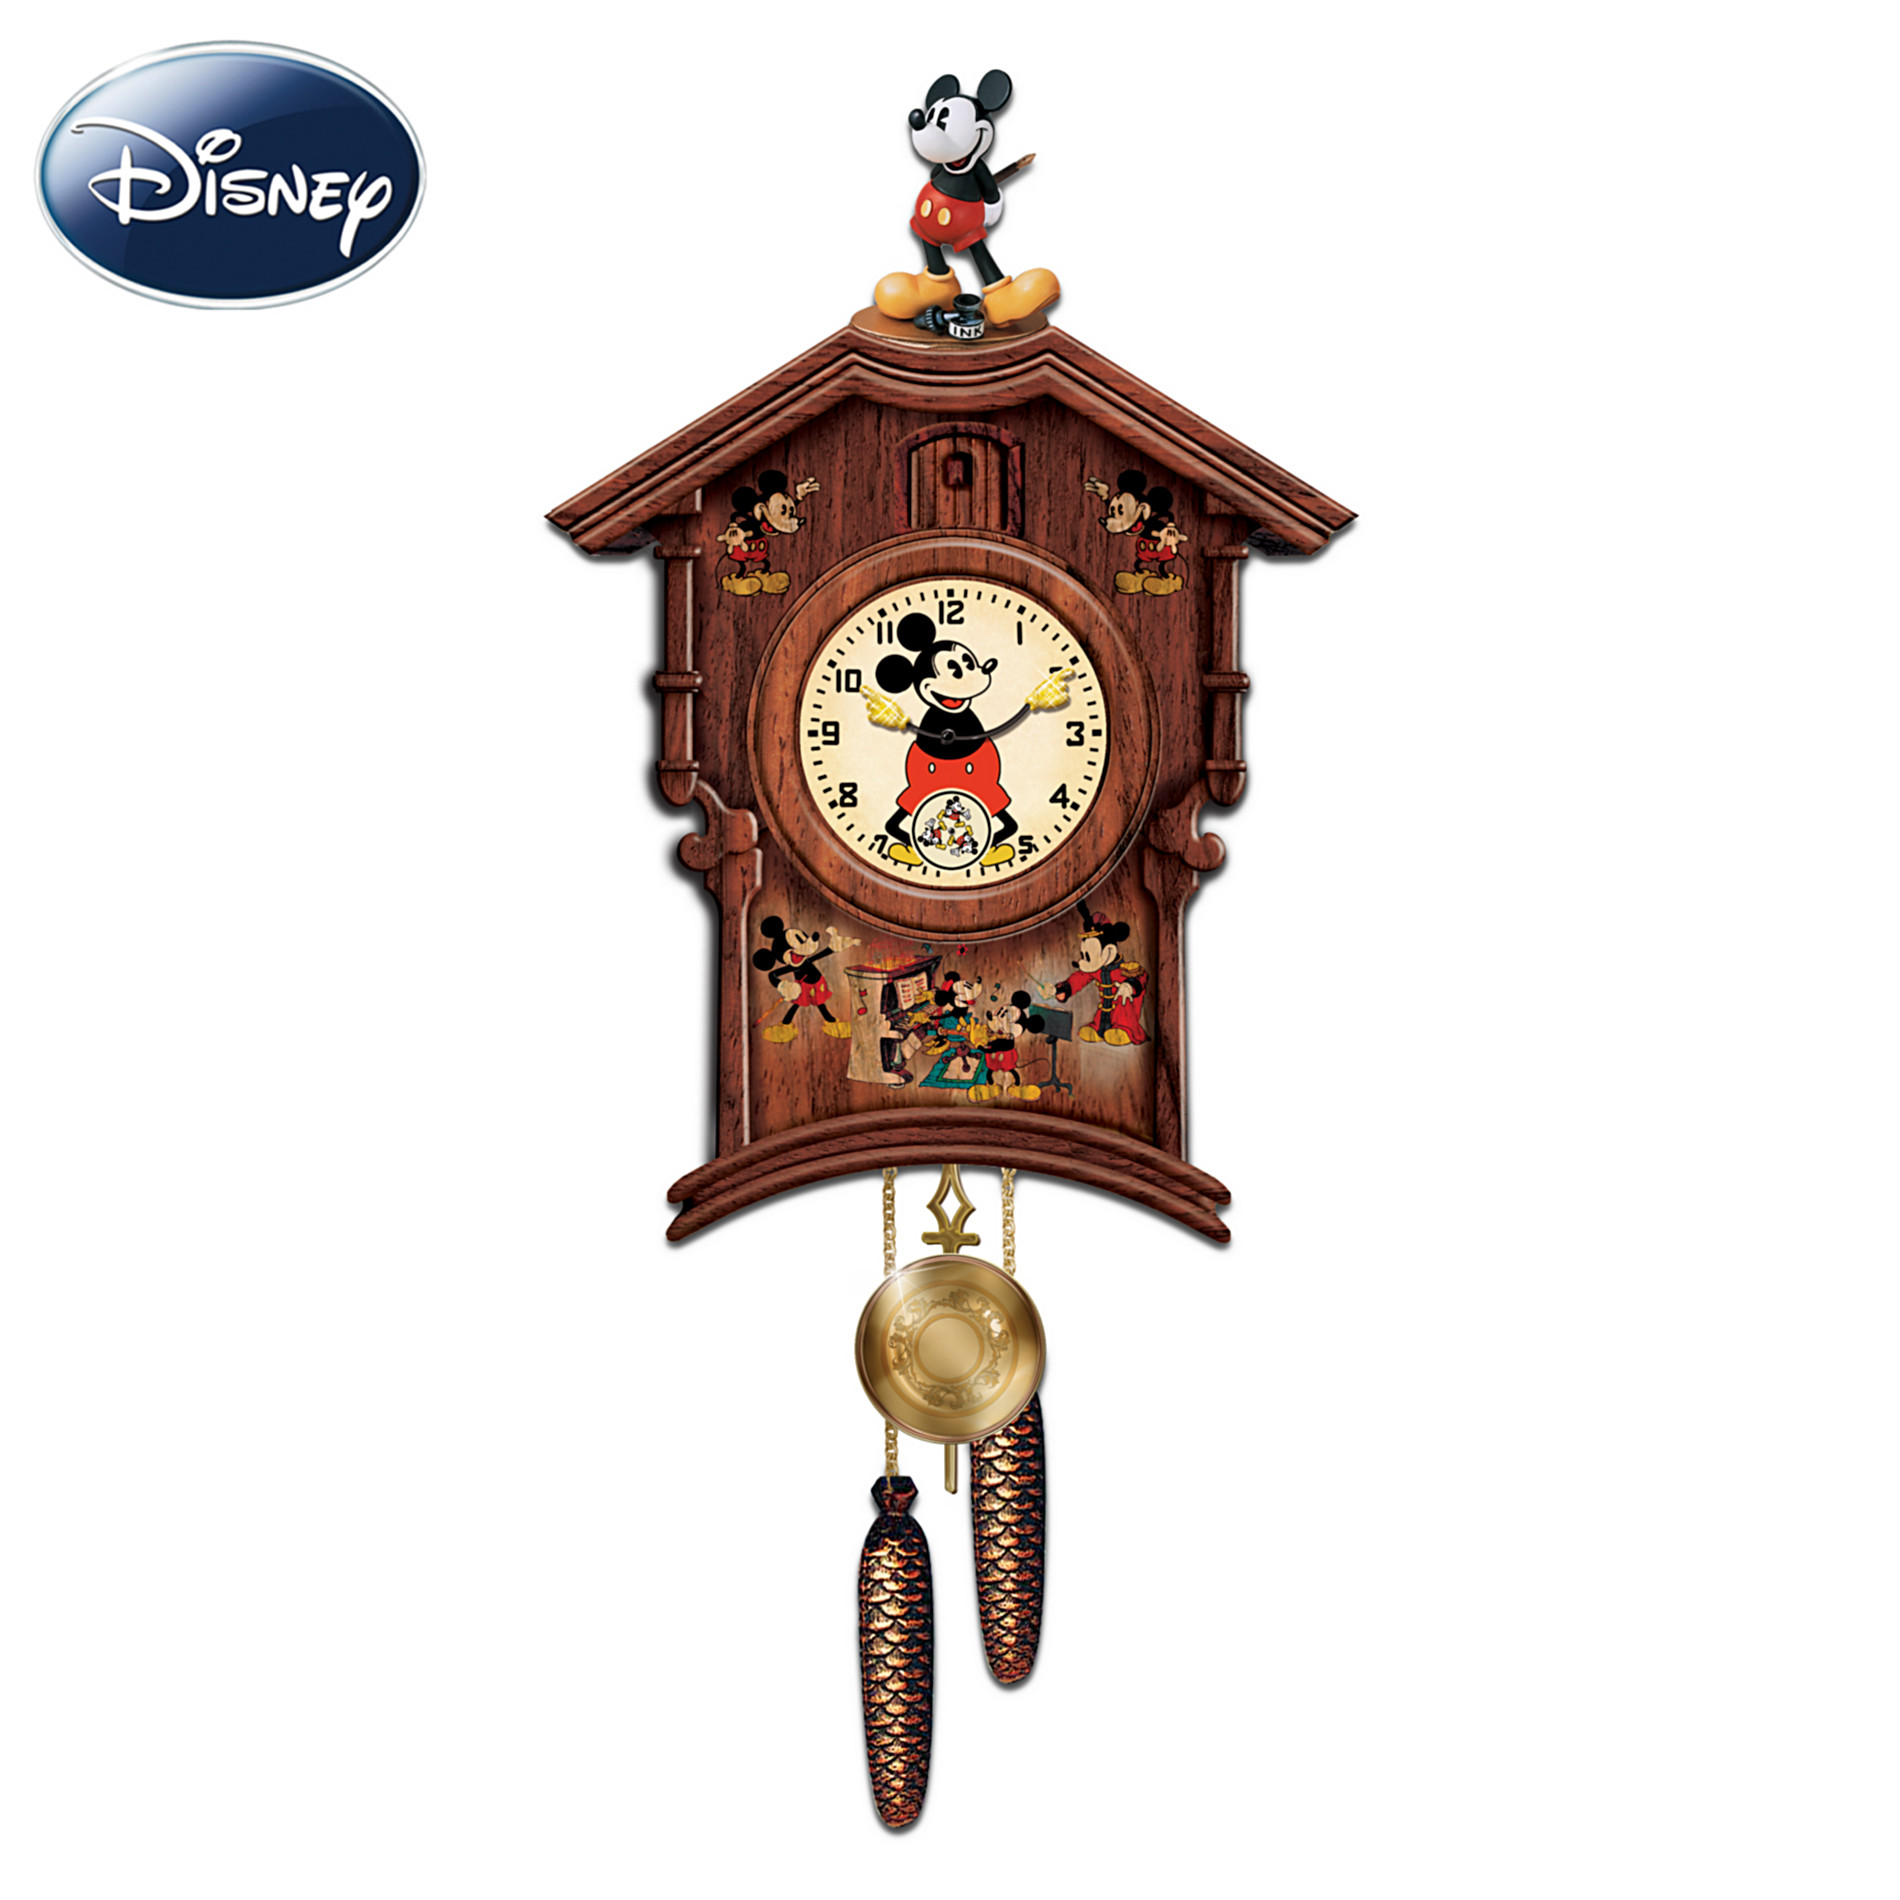 The Bradford Exchange Disney Memories Of Mickey Mouse Wooden Wall Cuckoo Clock: Disney Mickey Mouse Wall Decor at Sears.com